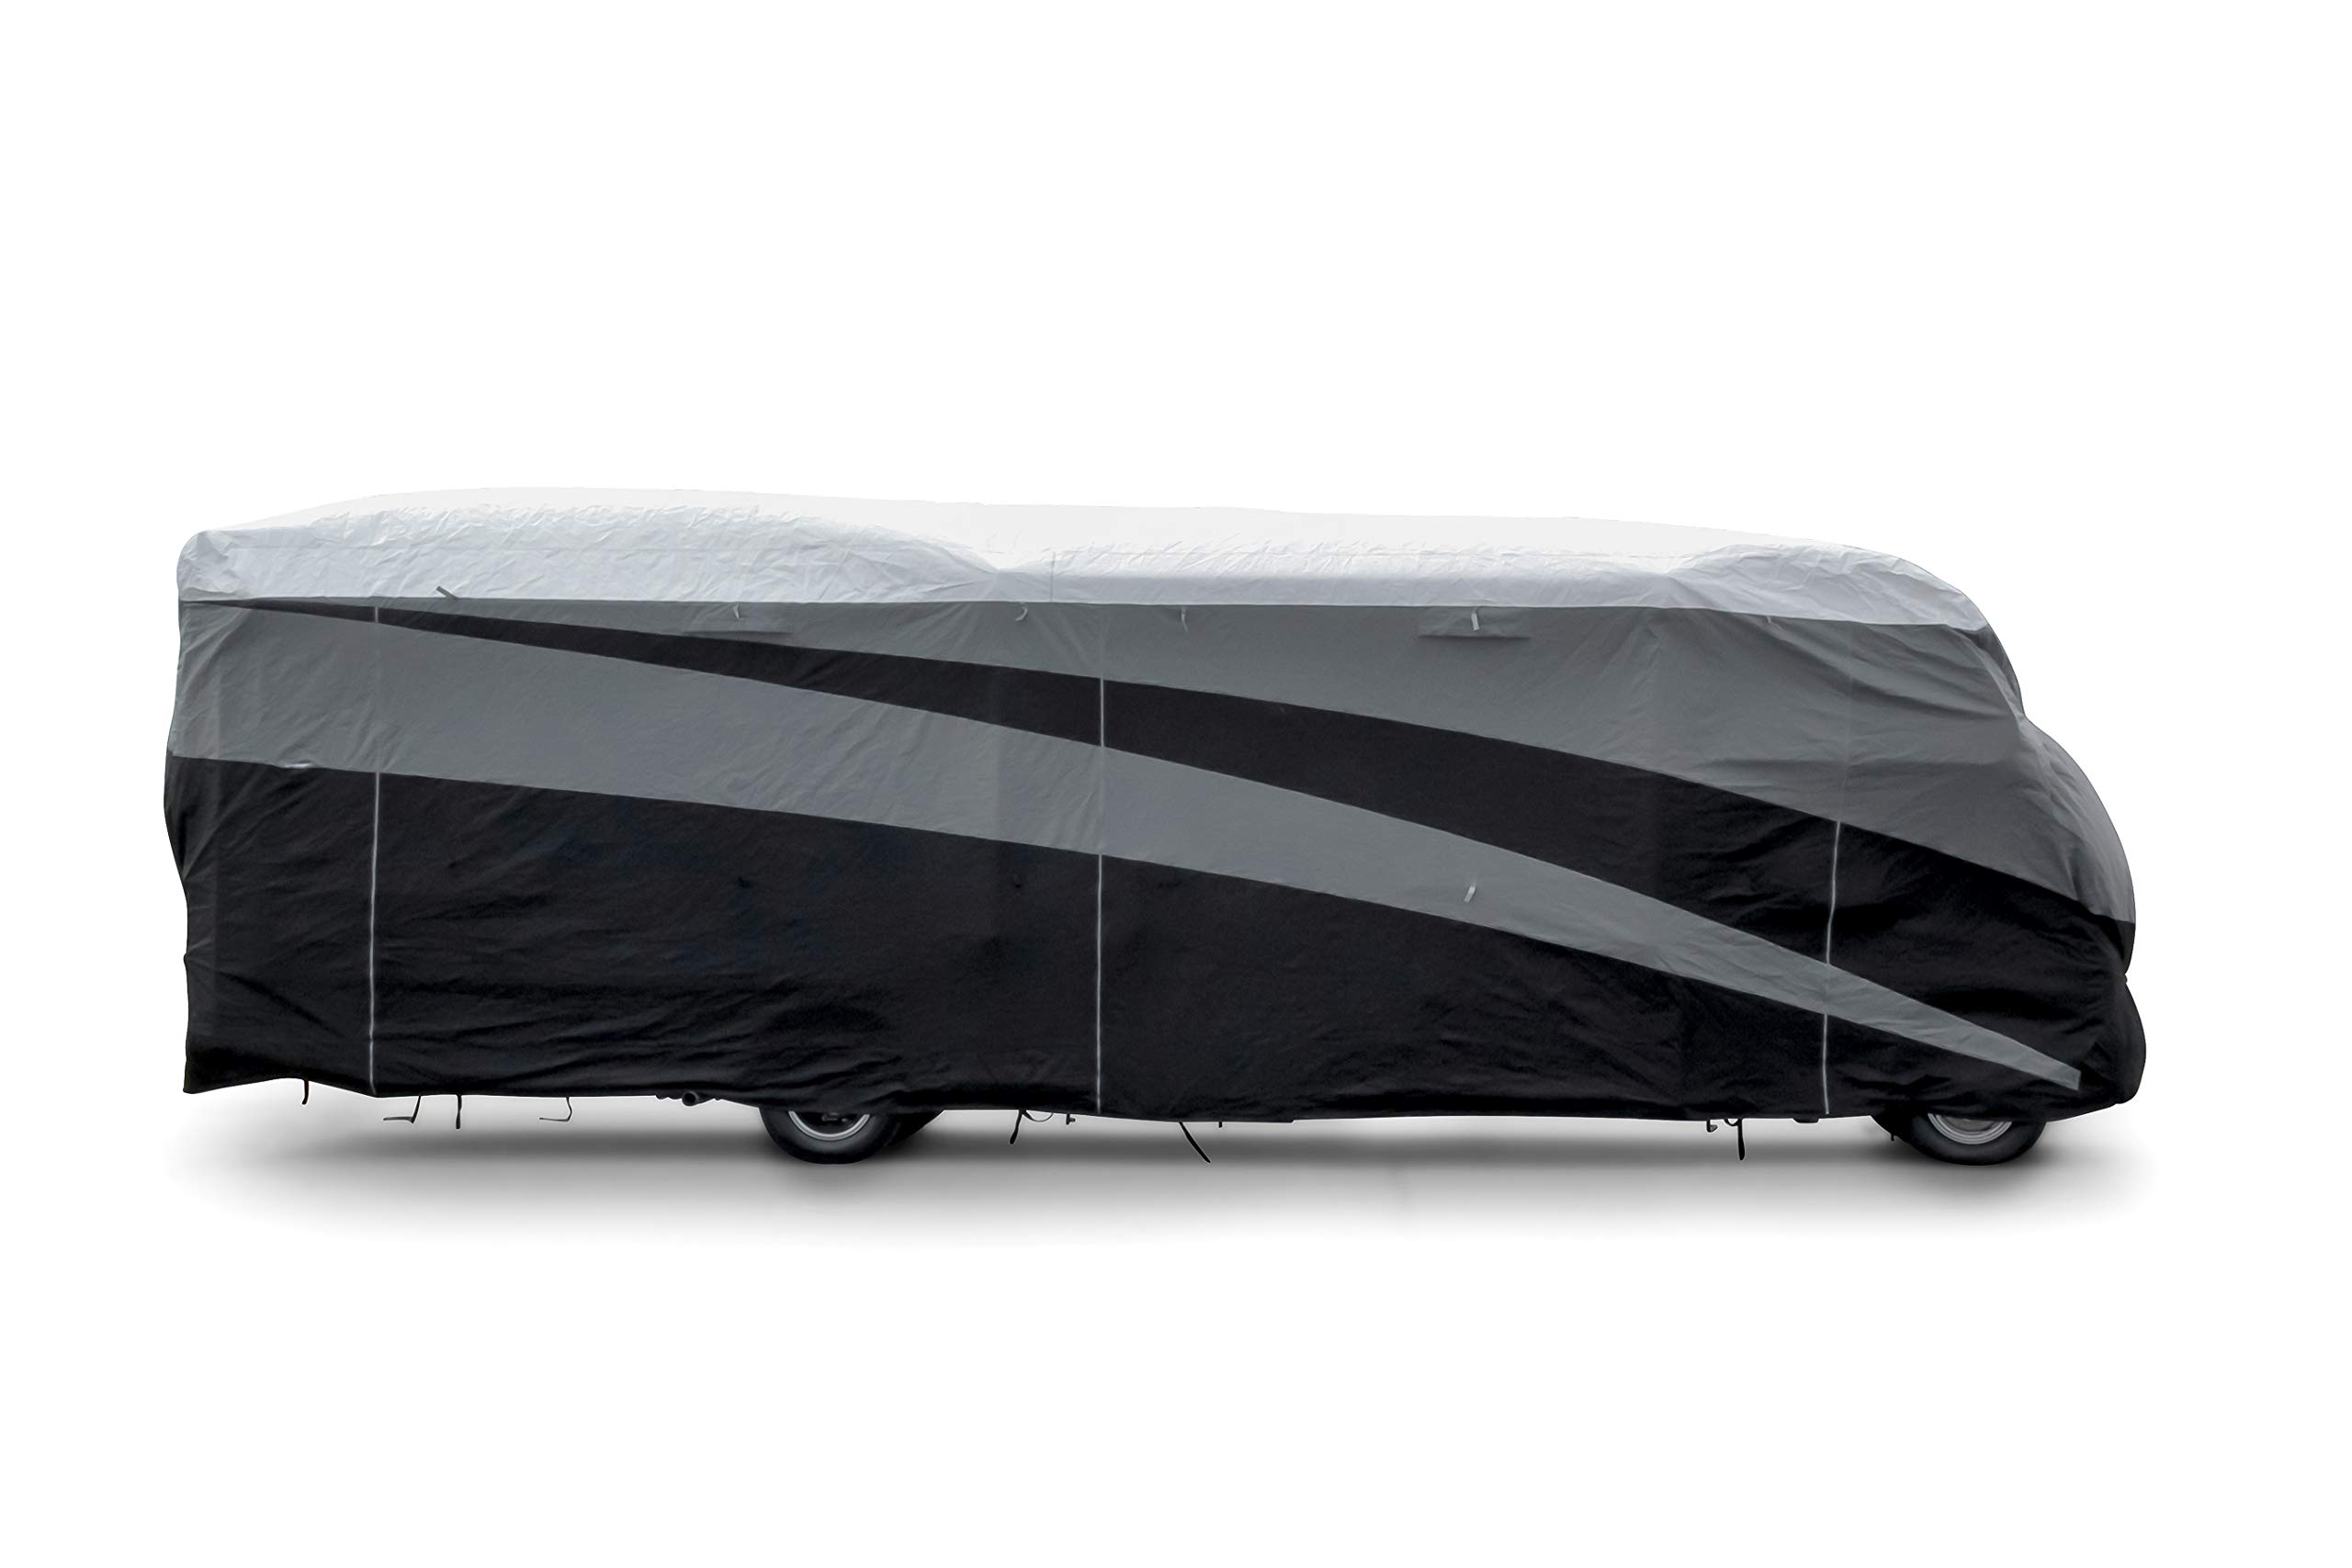 Camco ULTRAGuard Supreme Cover-Extremely Durable Design Fits Class C Model RVs 23' -26', Weatherproof with UV Protection and Dupont Tyvek Top (56114) by Camco (Image #6)